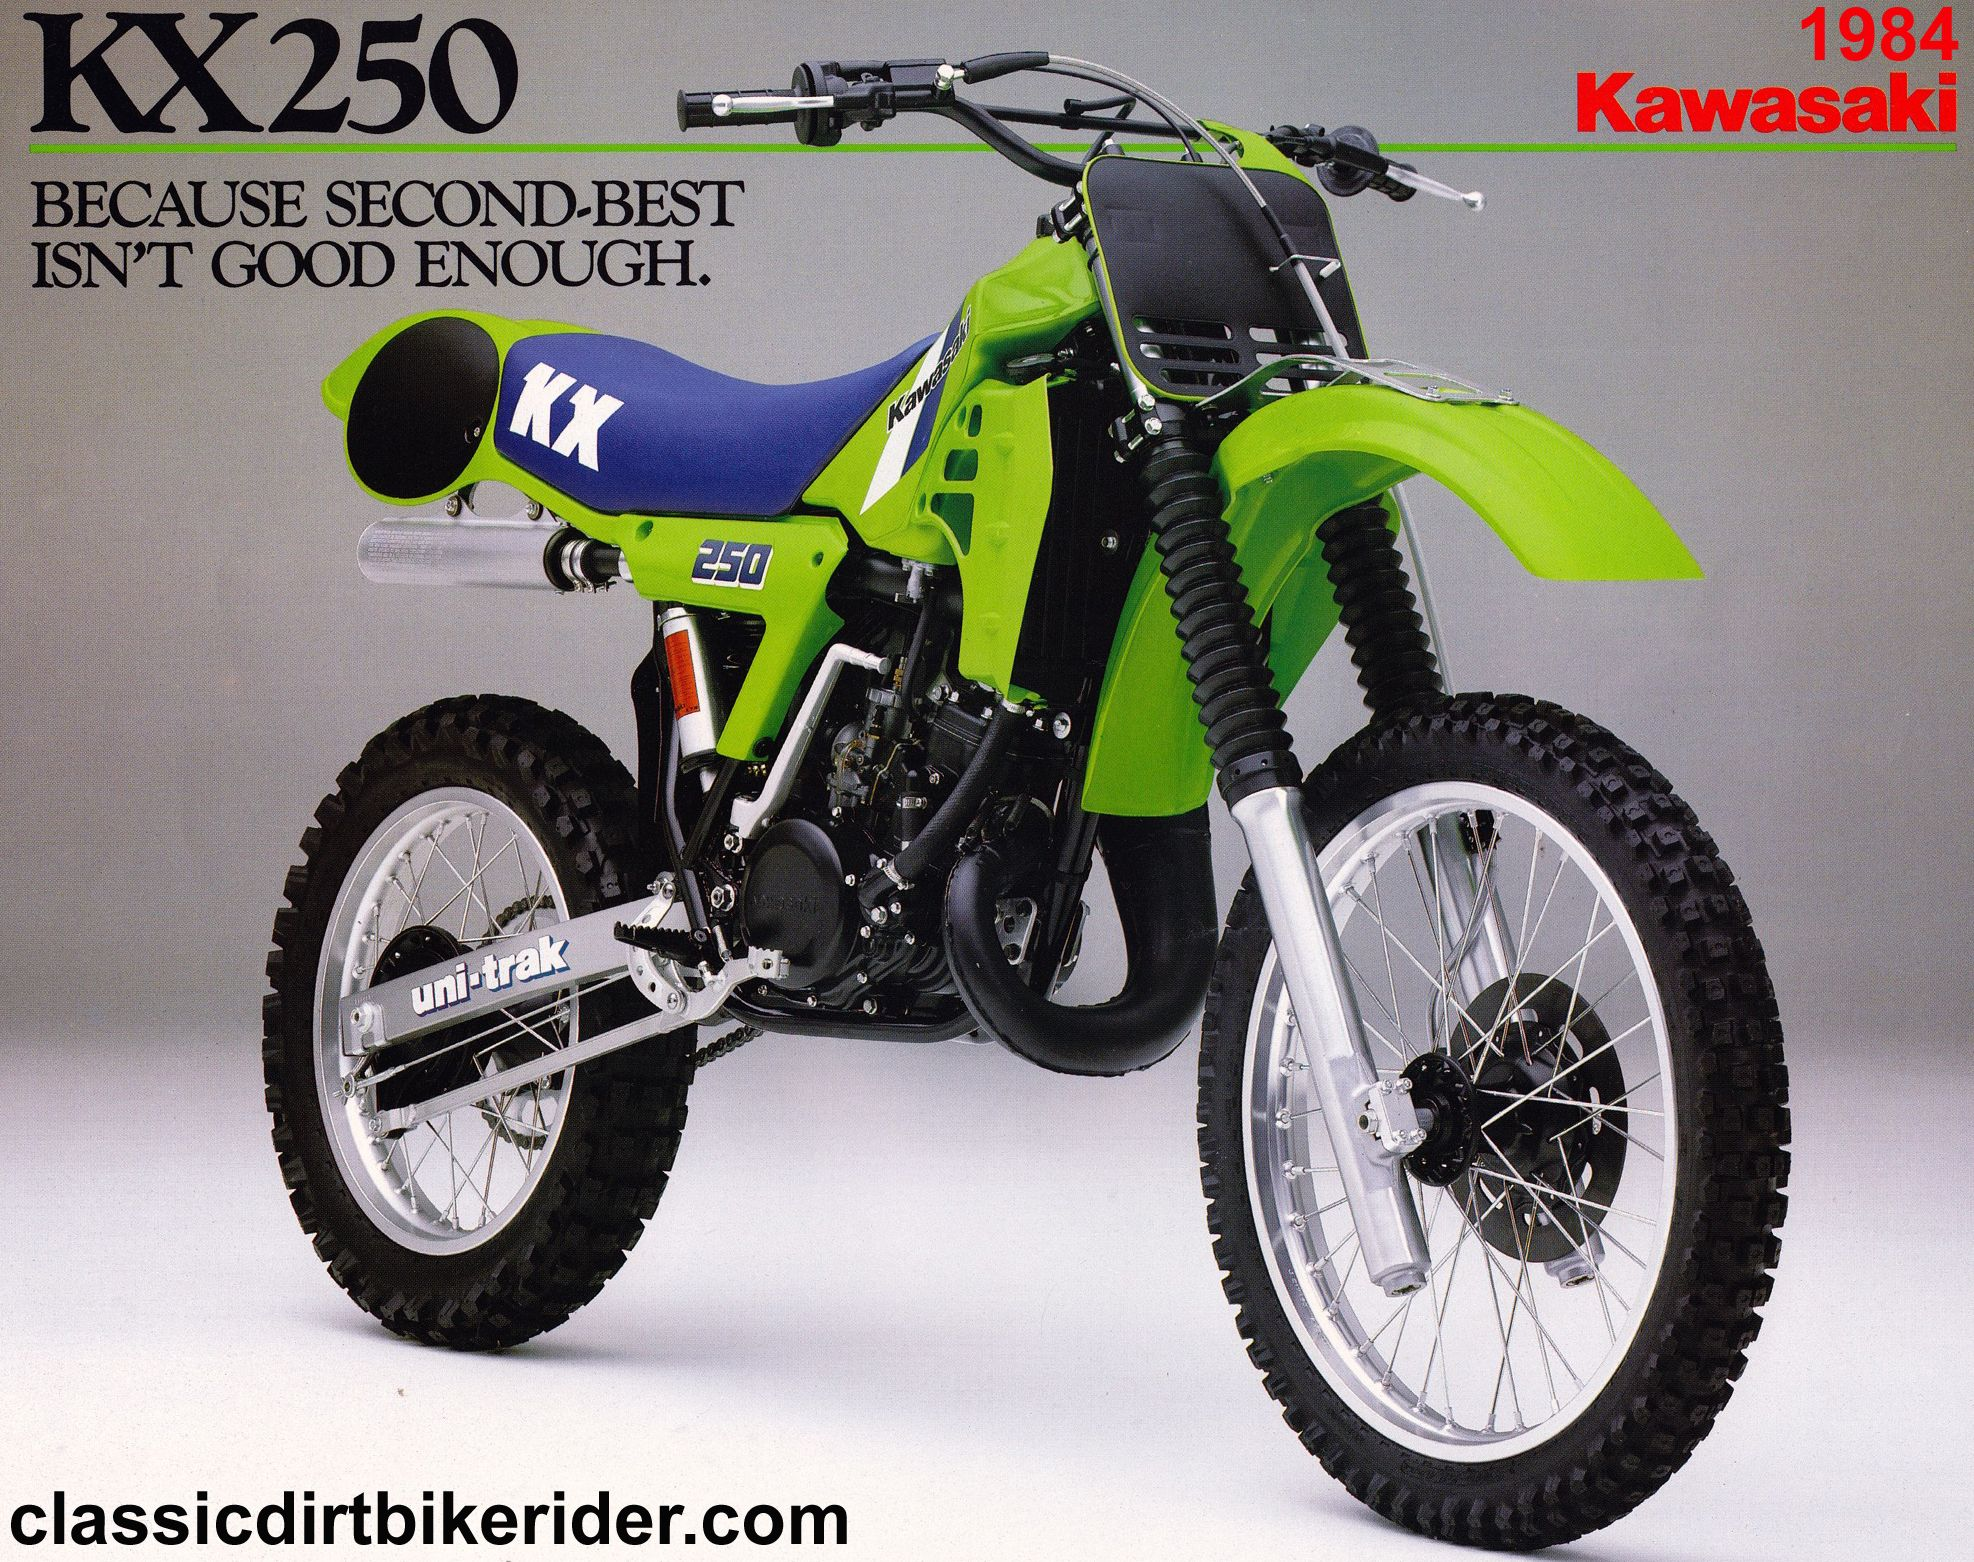 1984 kawasaki kx250 advertisement kawasaki kx motorcycles rh pinterest co uk 1980 KX 250 1992 KX 250